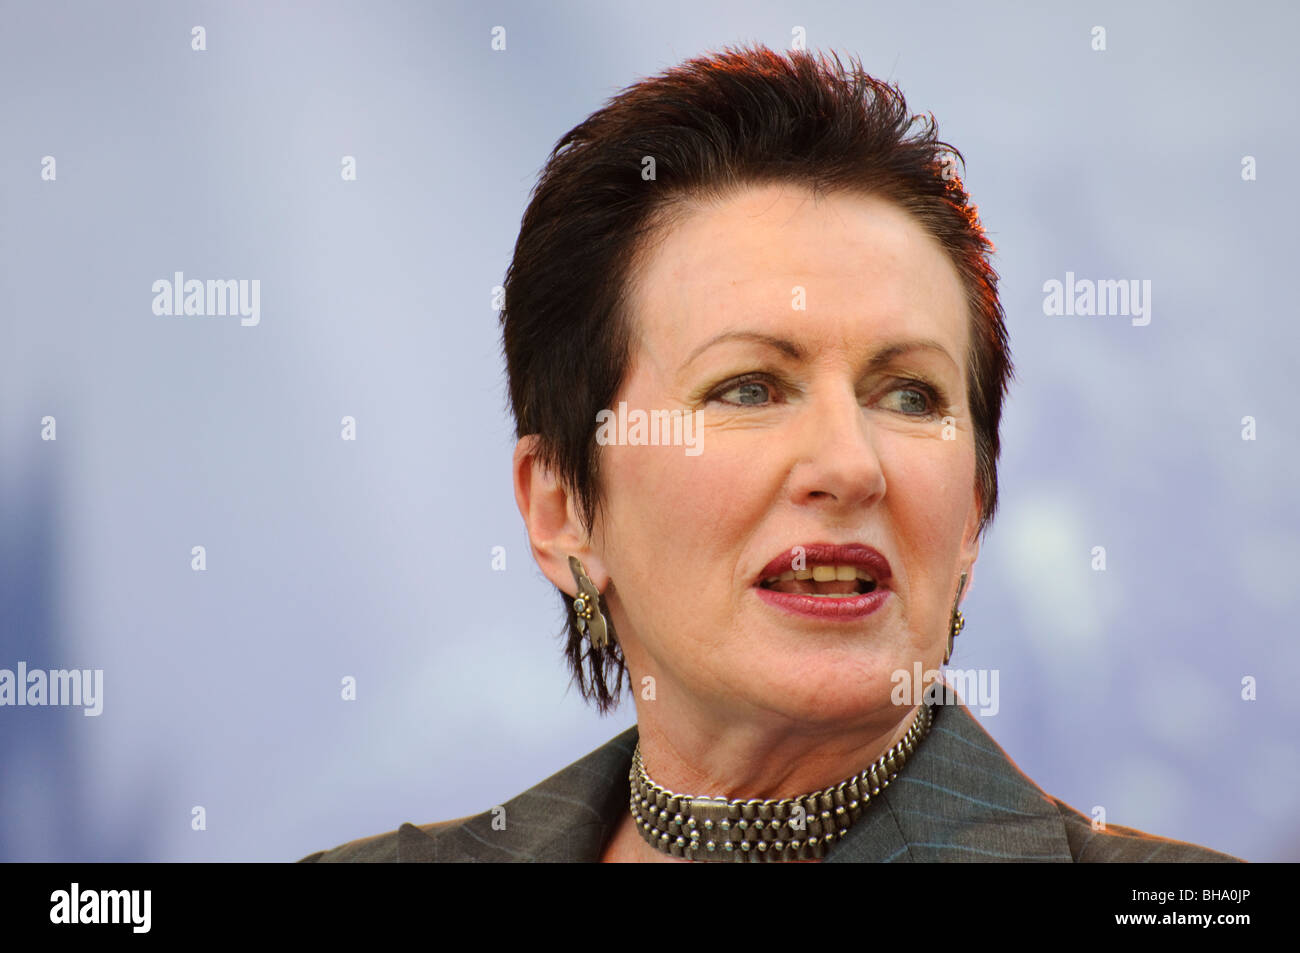 A well-known female politician giving a speech. - Stock Image